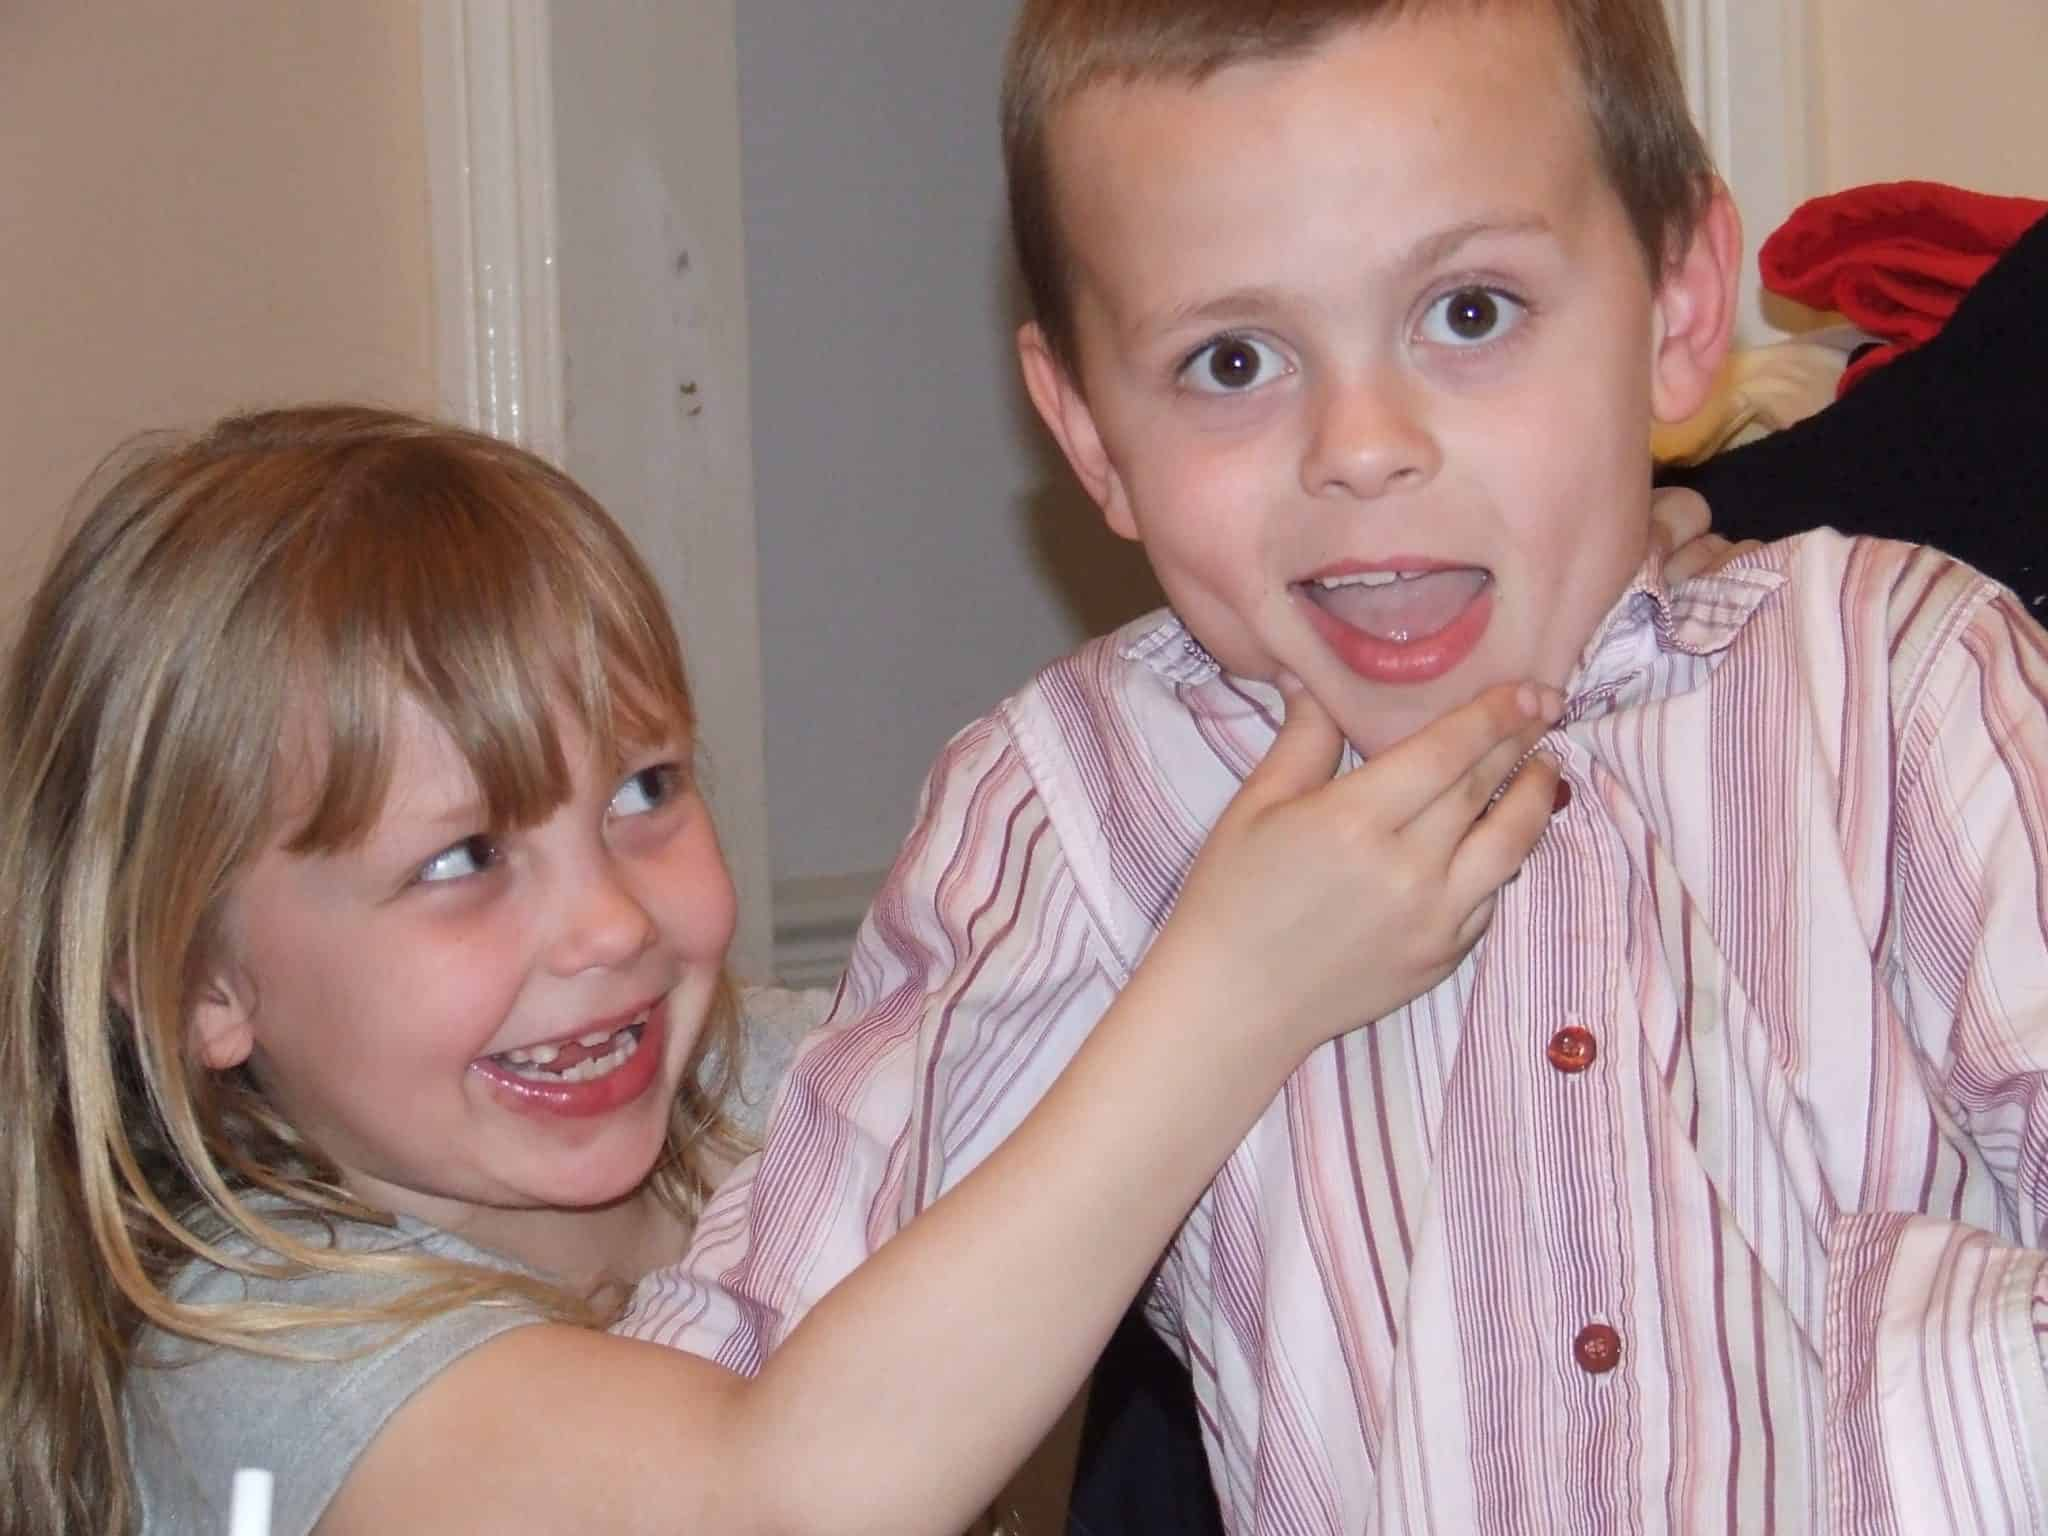 Two kids mucking about